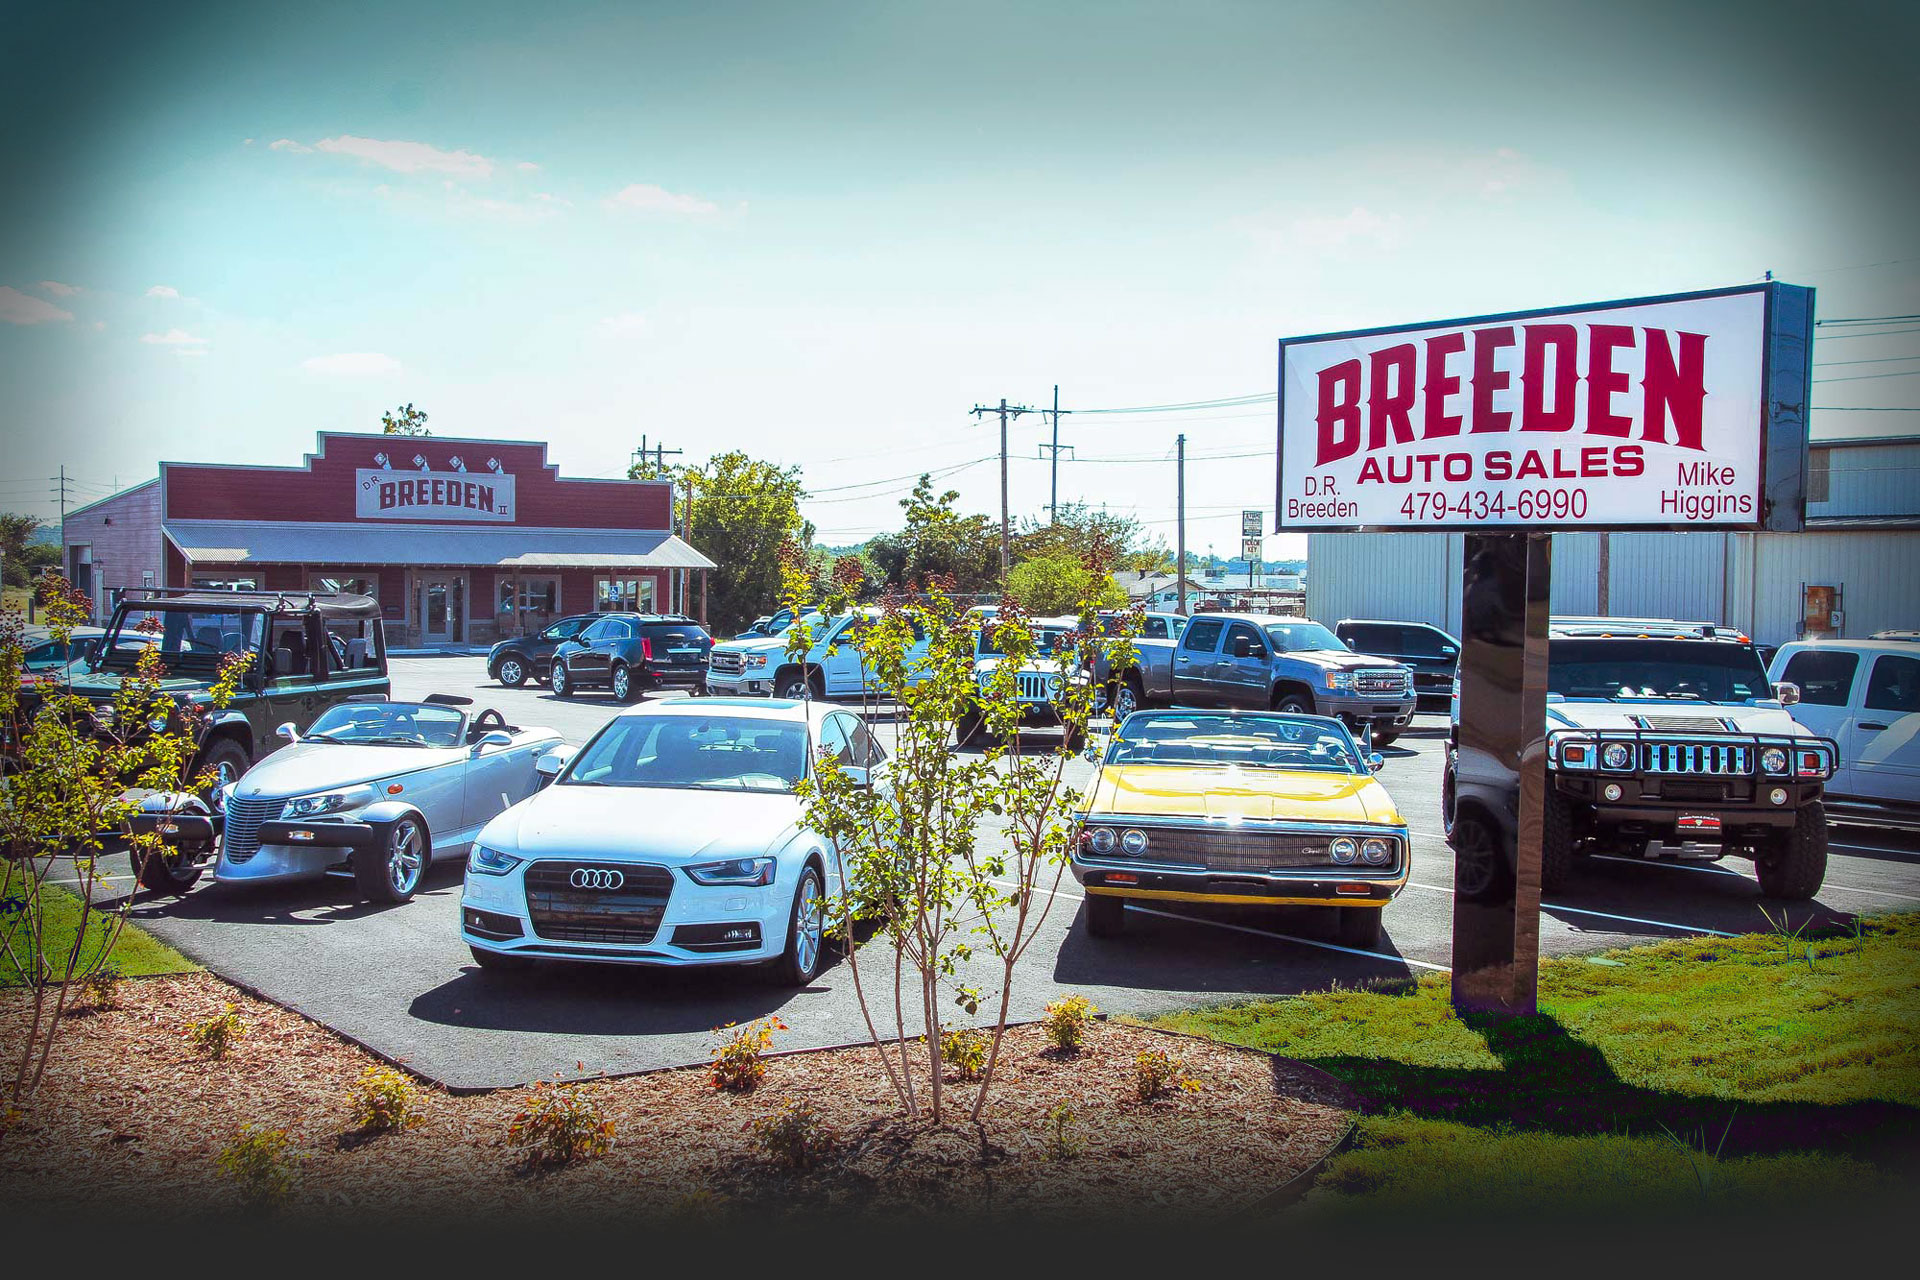 Used Car Dealerships In Fort Smith Ar >> Used Cars Fort Smith Used Car Dealer Fort Smith Breeden Auto Sales